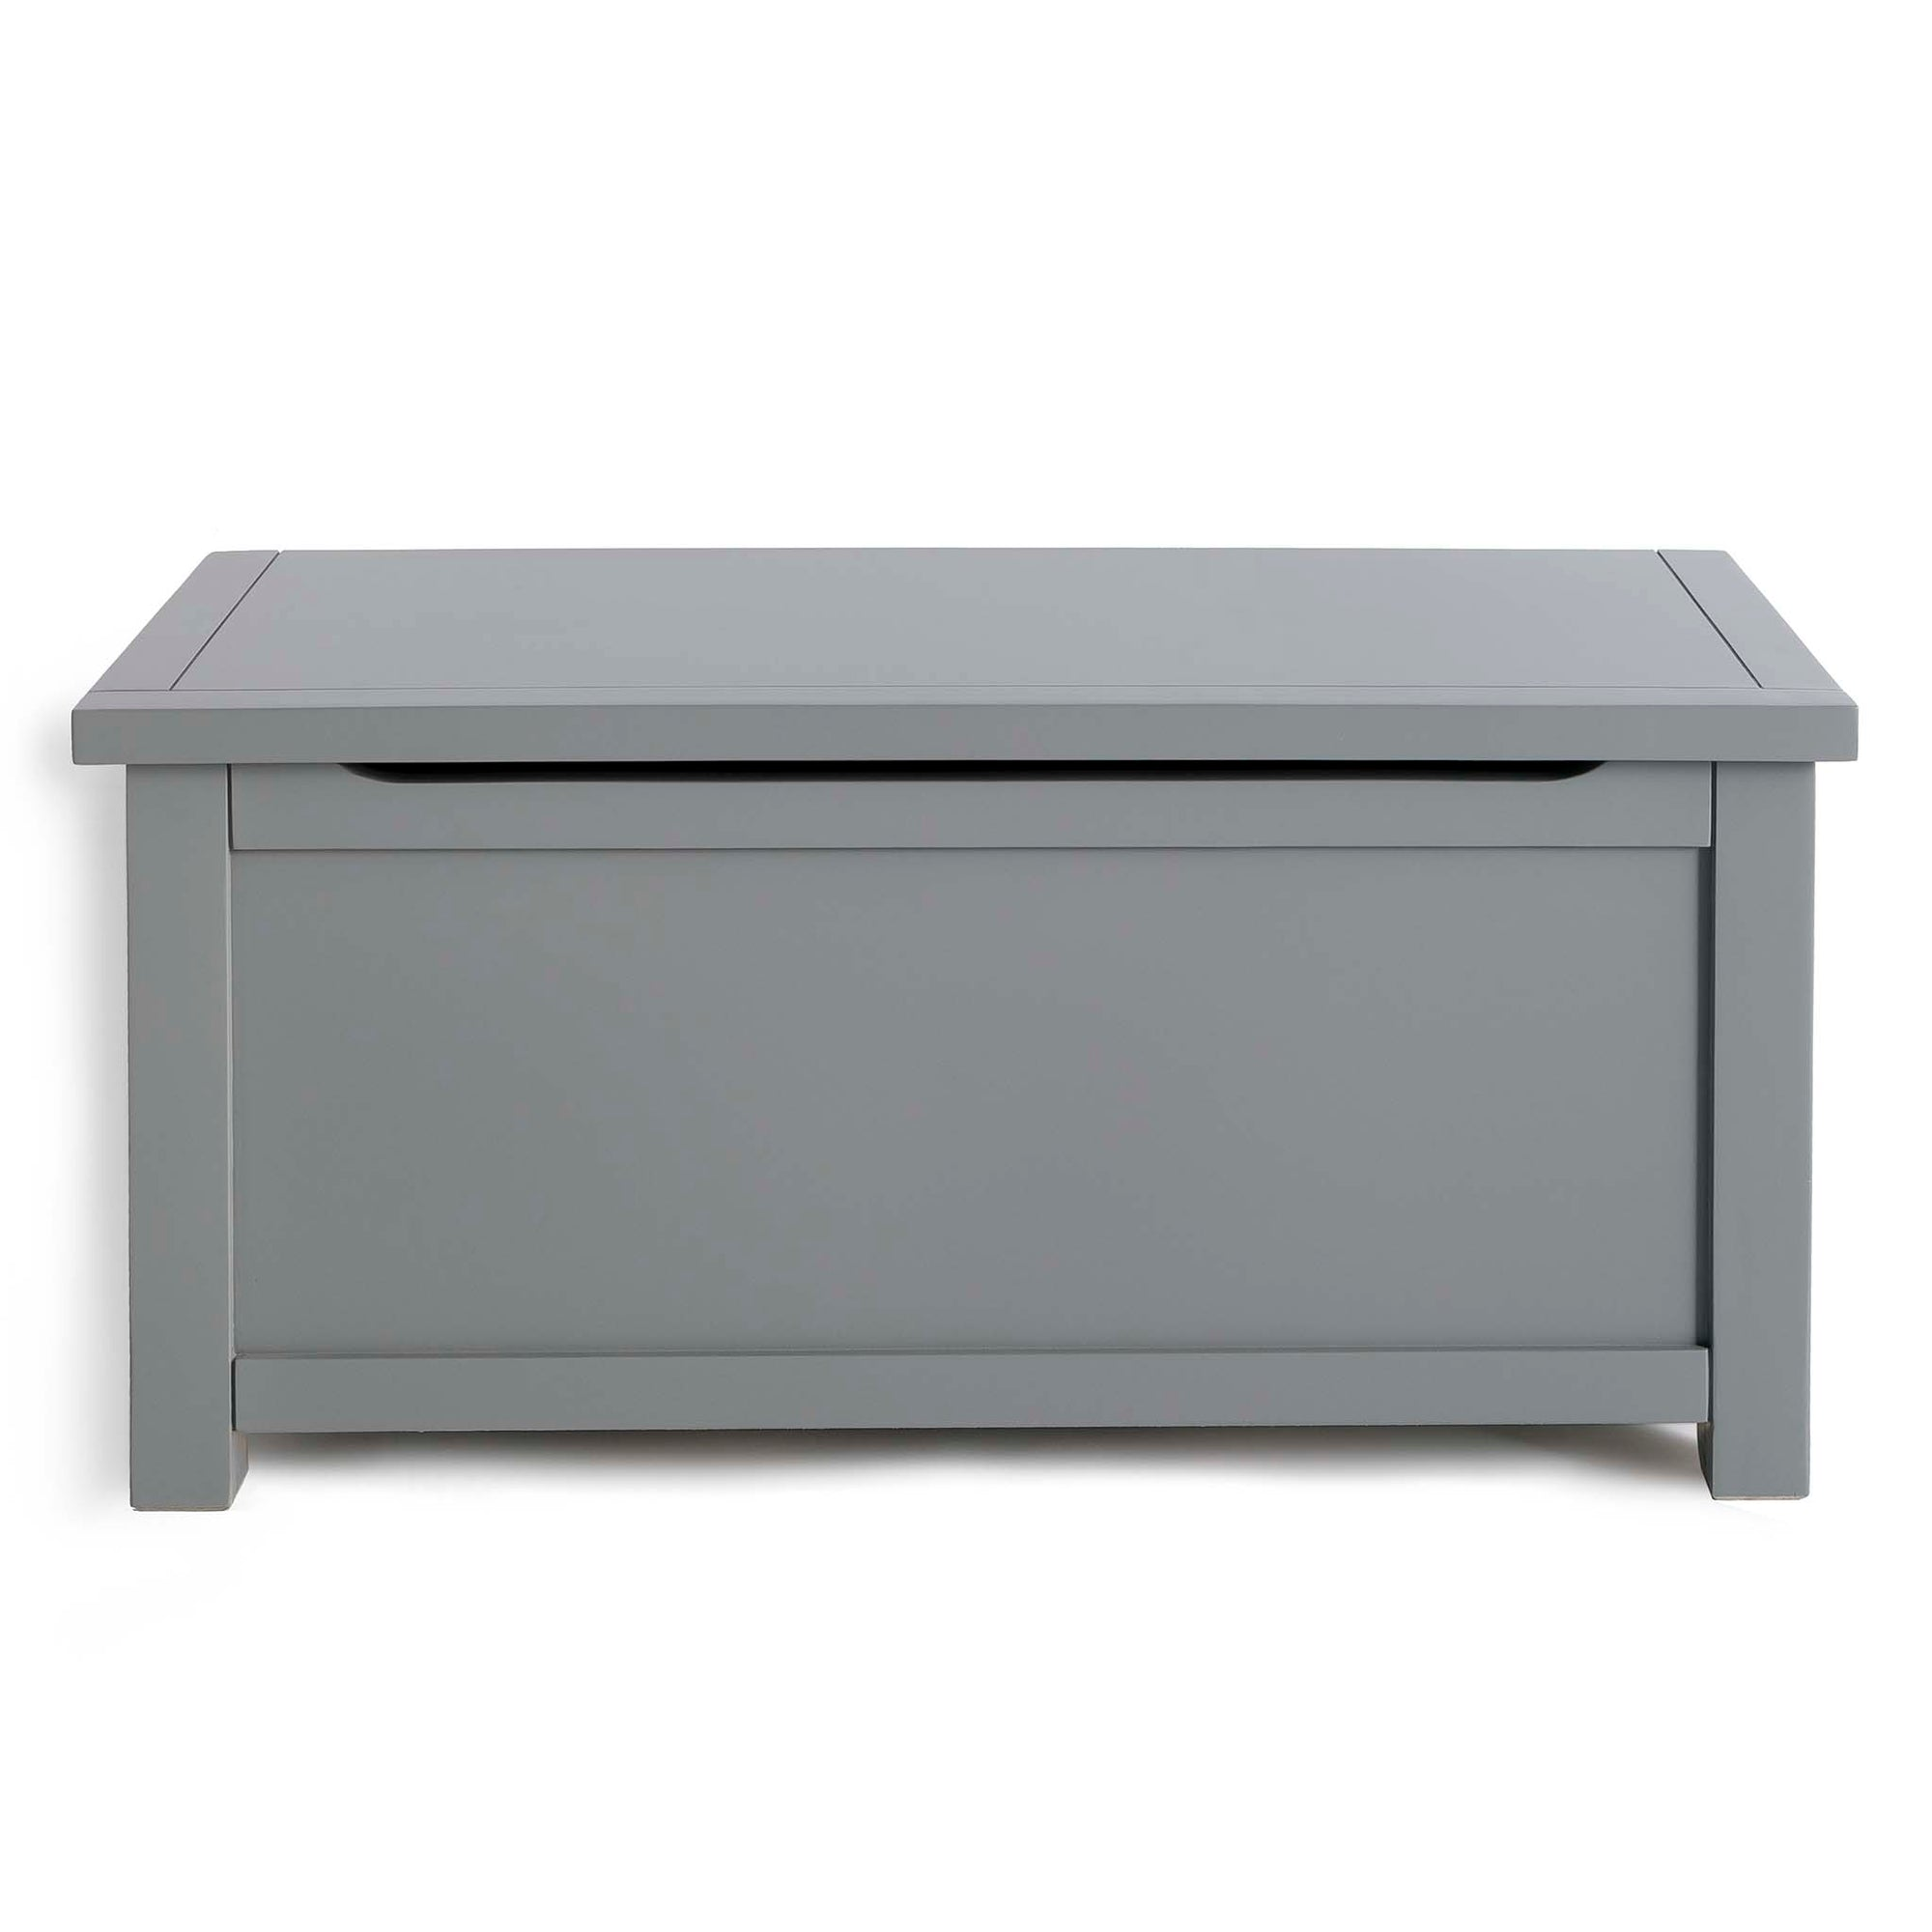 Cornish Grey Wooden Blanket Box Trunk Ottoman from Roseland Furniture